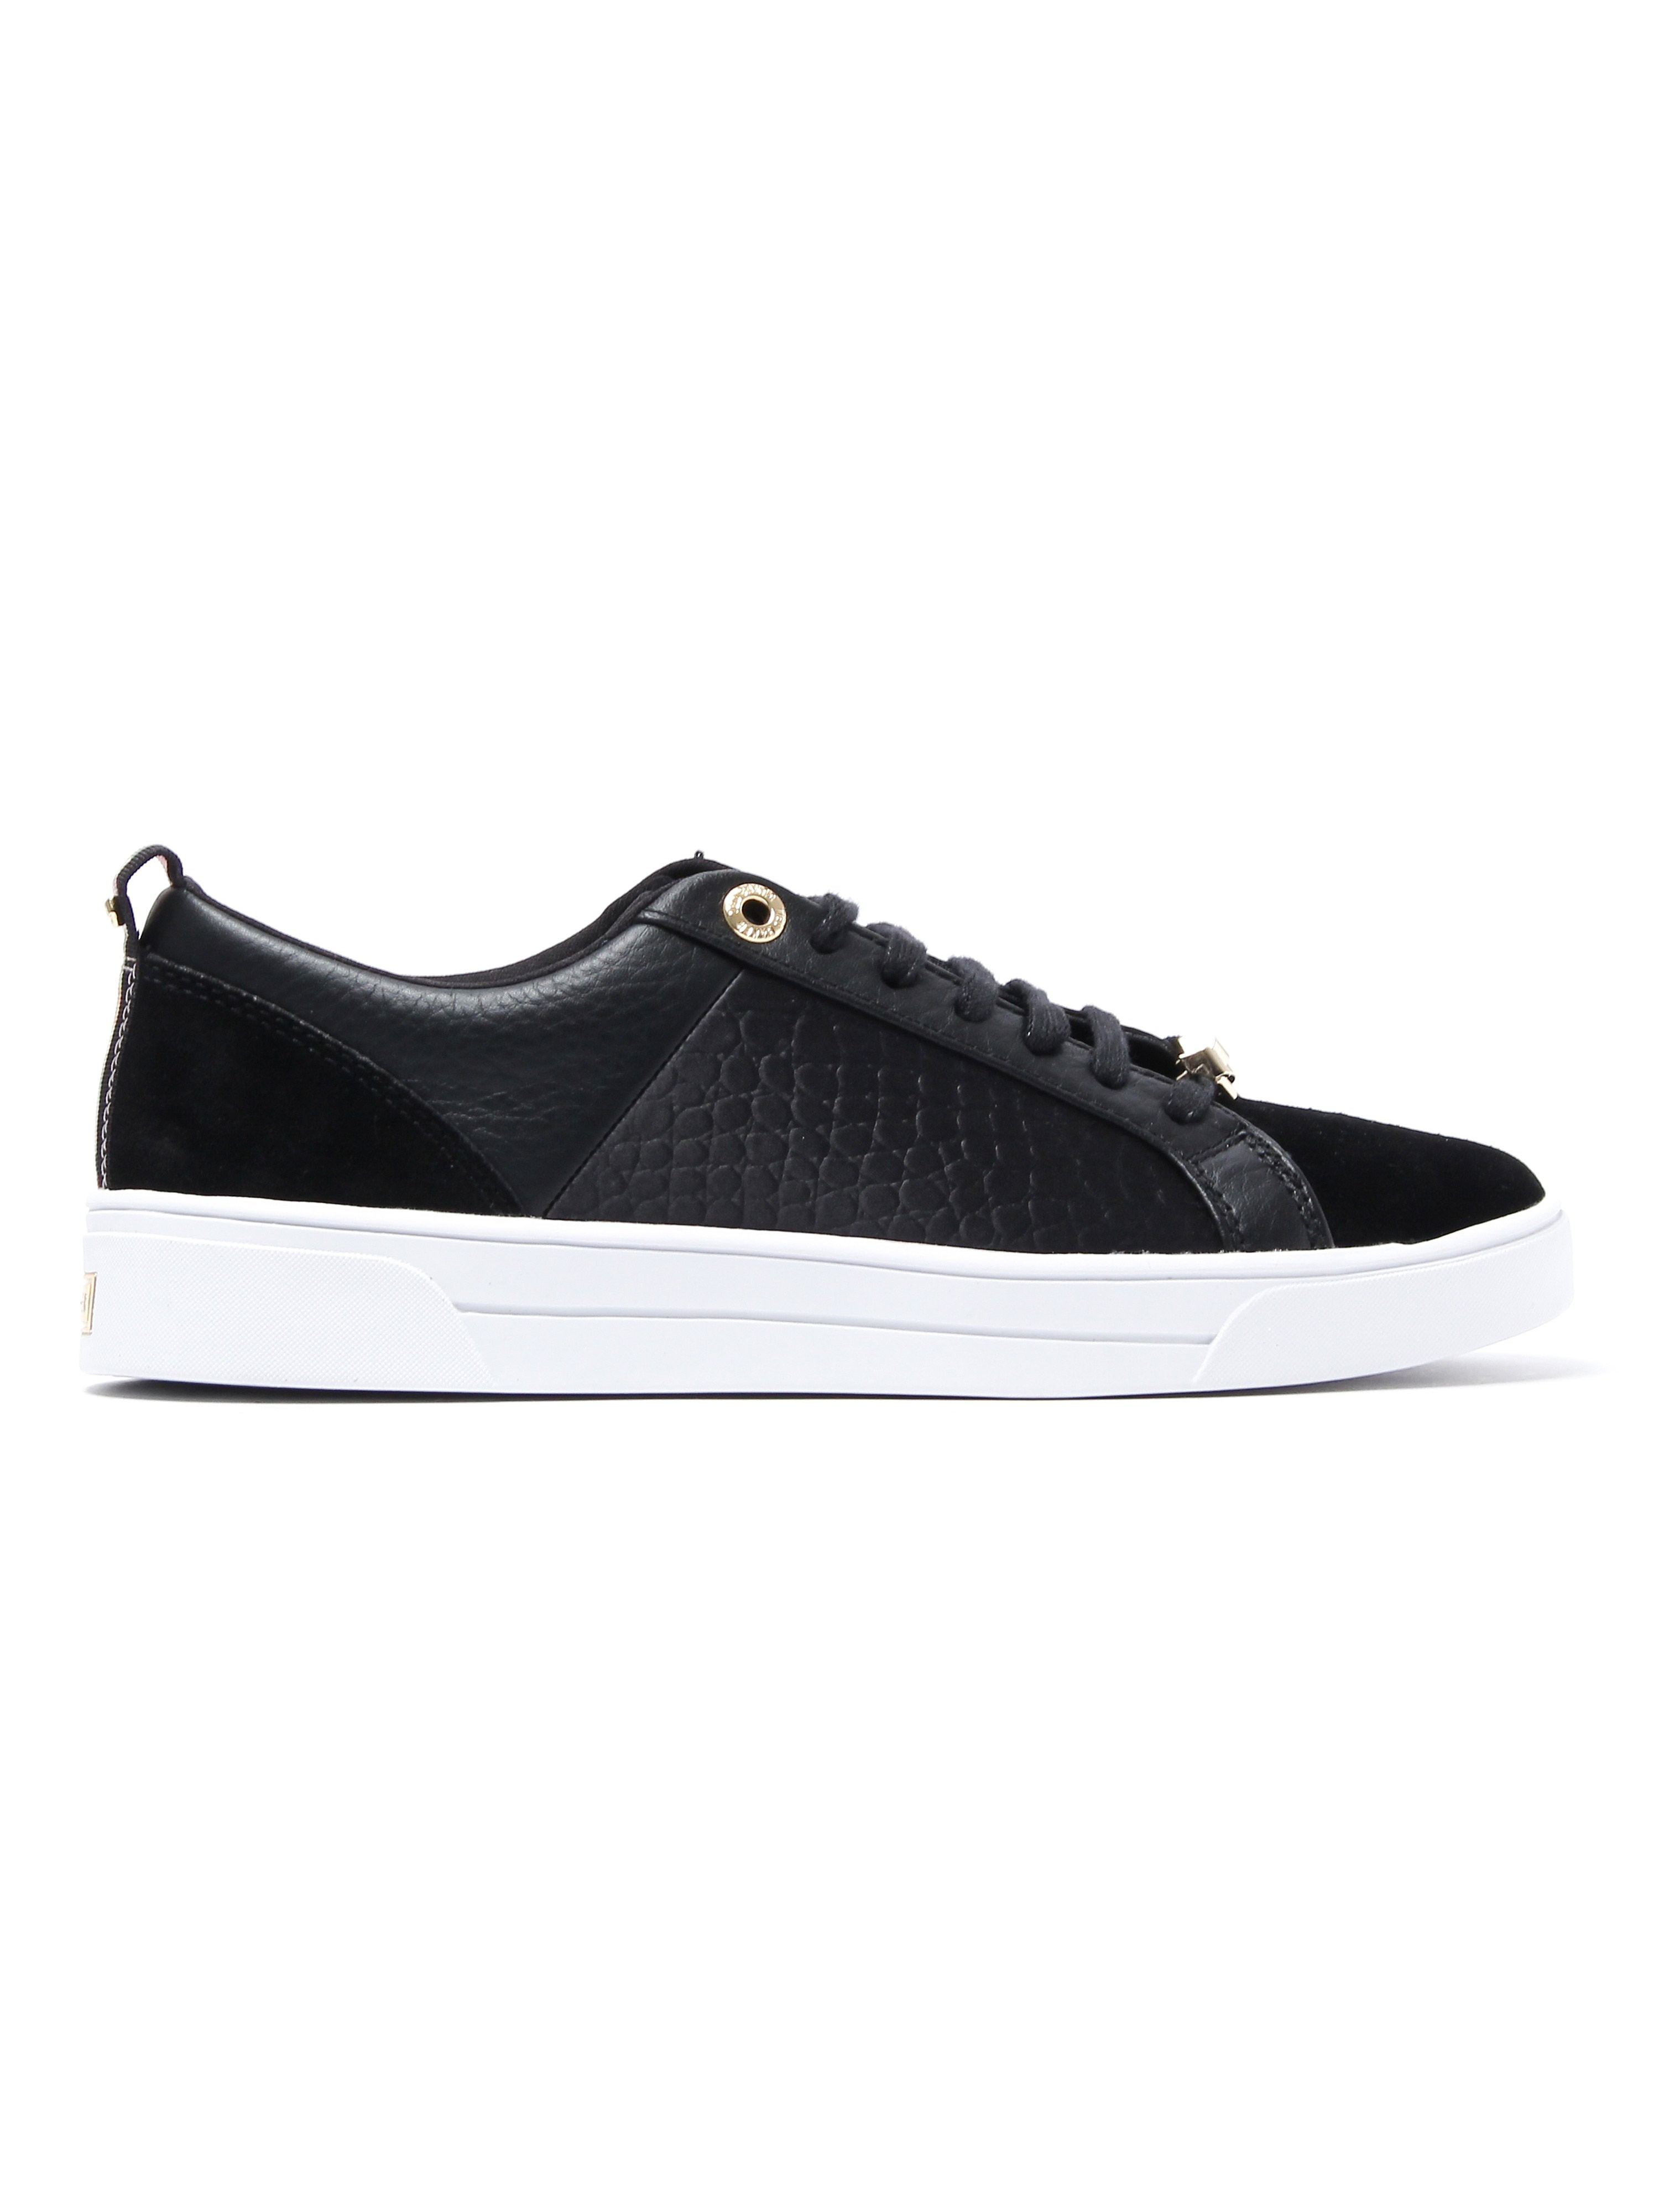 Ted Baker Women's Kulei Trainers - Black Leather